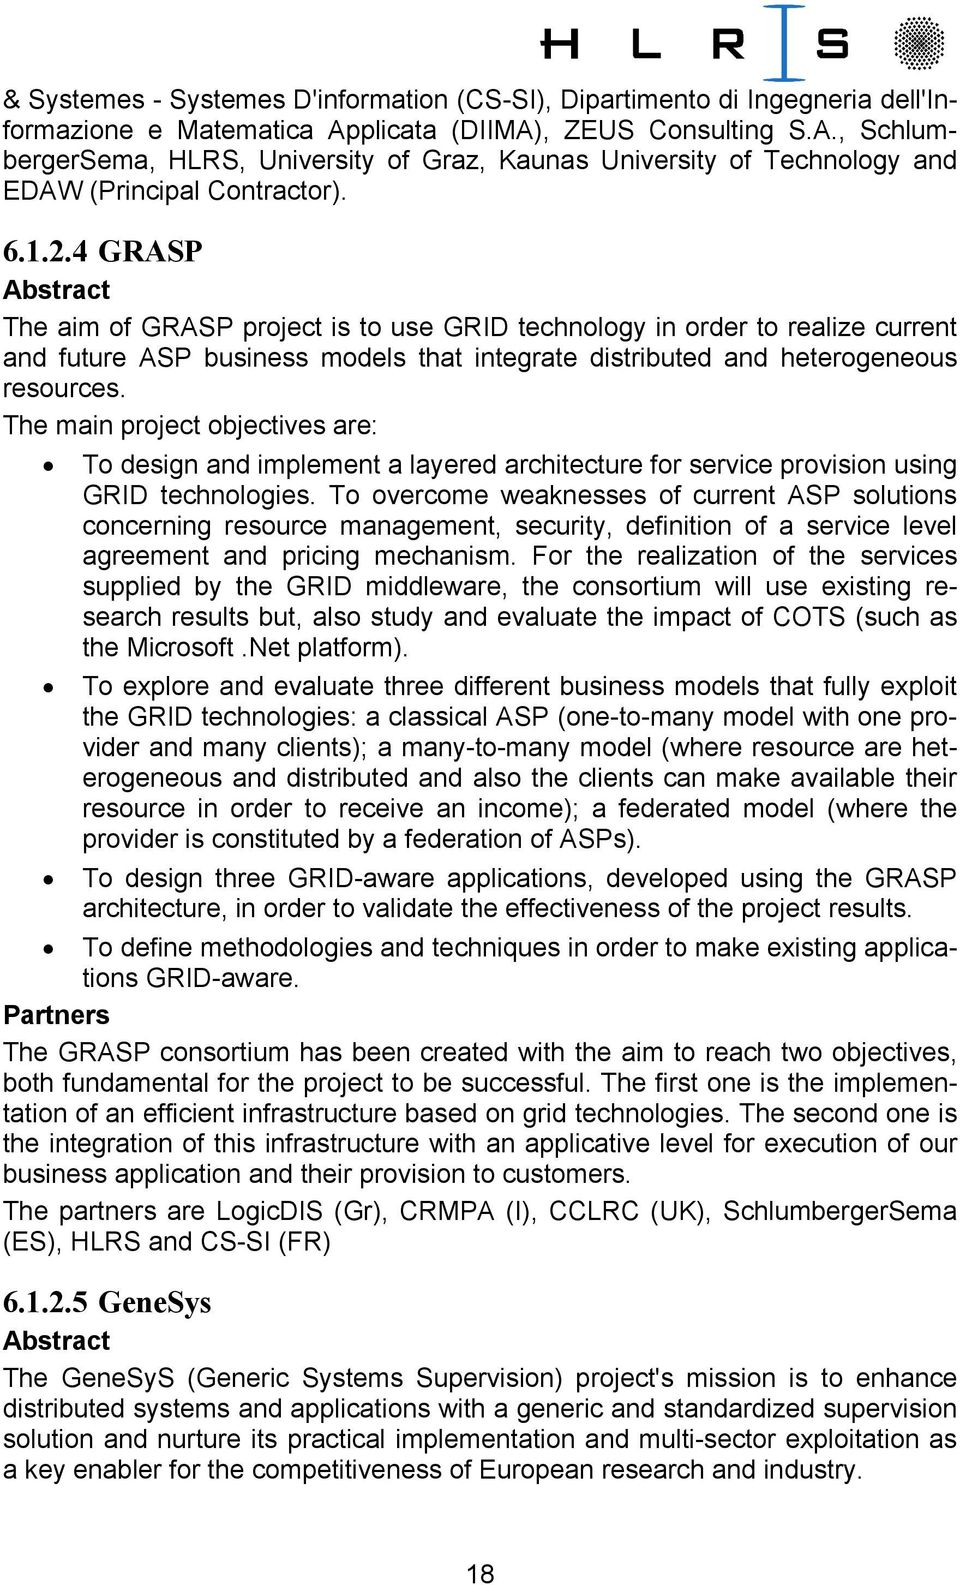 4 GRASP Abstract The aim of GRASP project is to use GRID technology in order to realize current and future ASP business models that integrate distributed and heterogeneous resources.